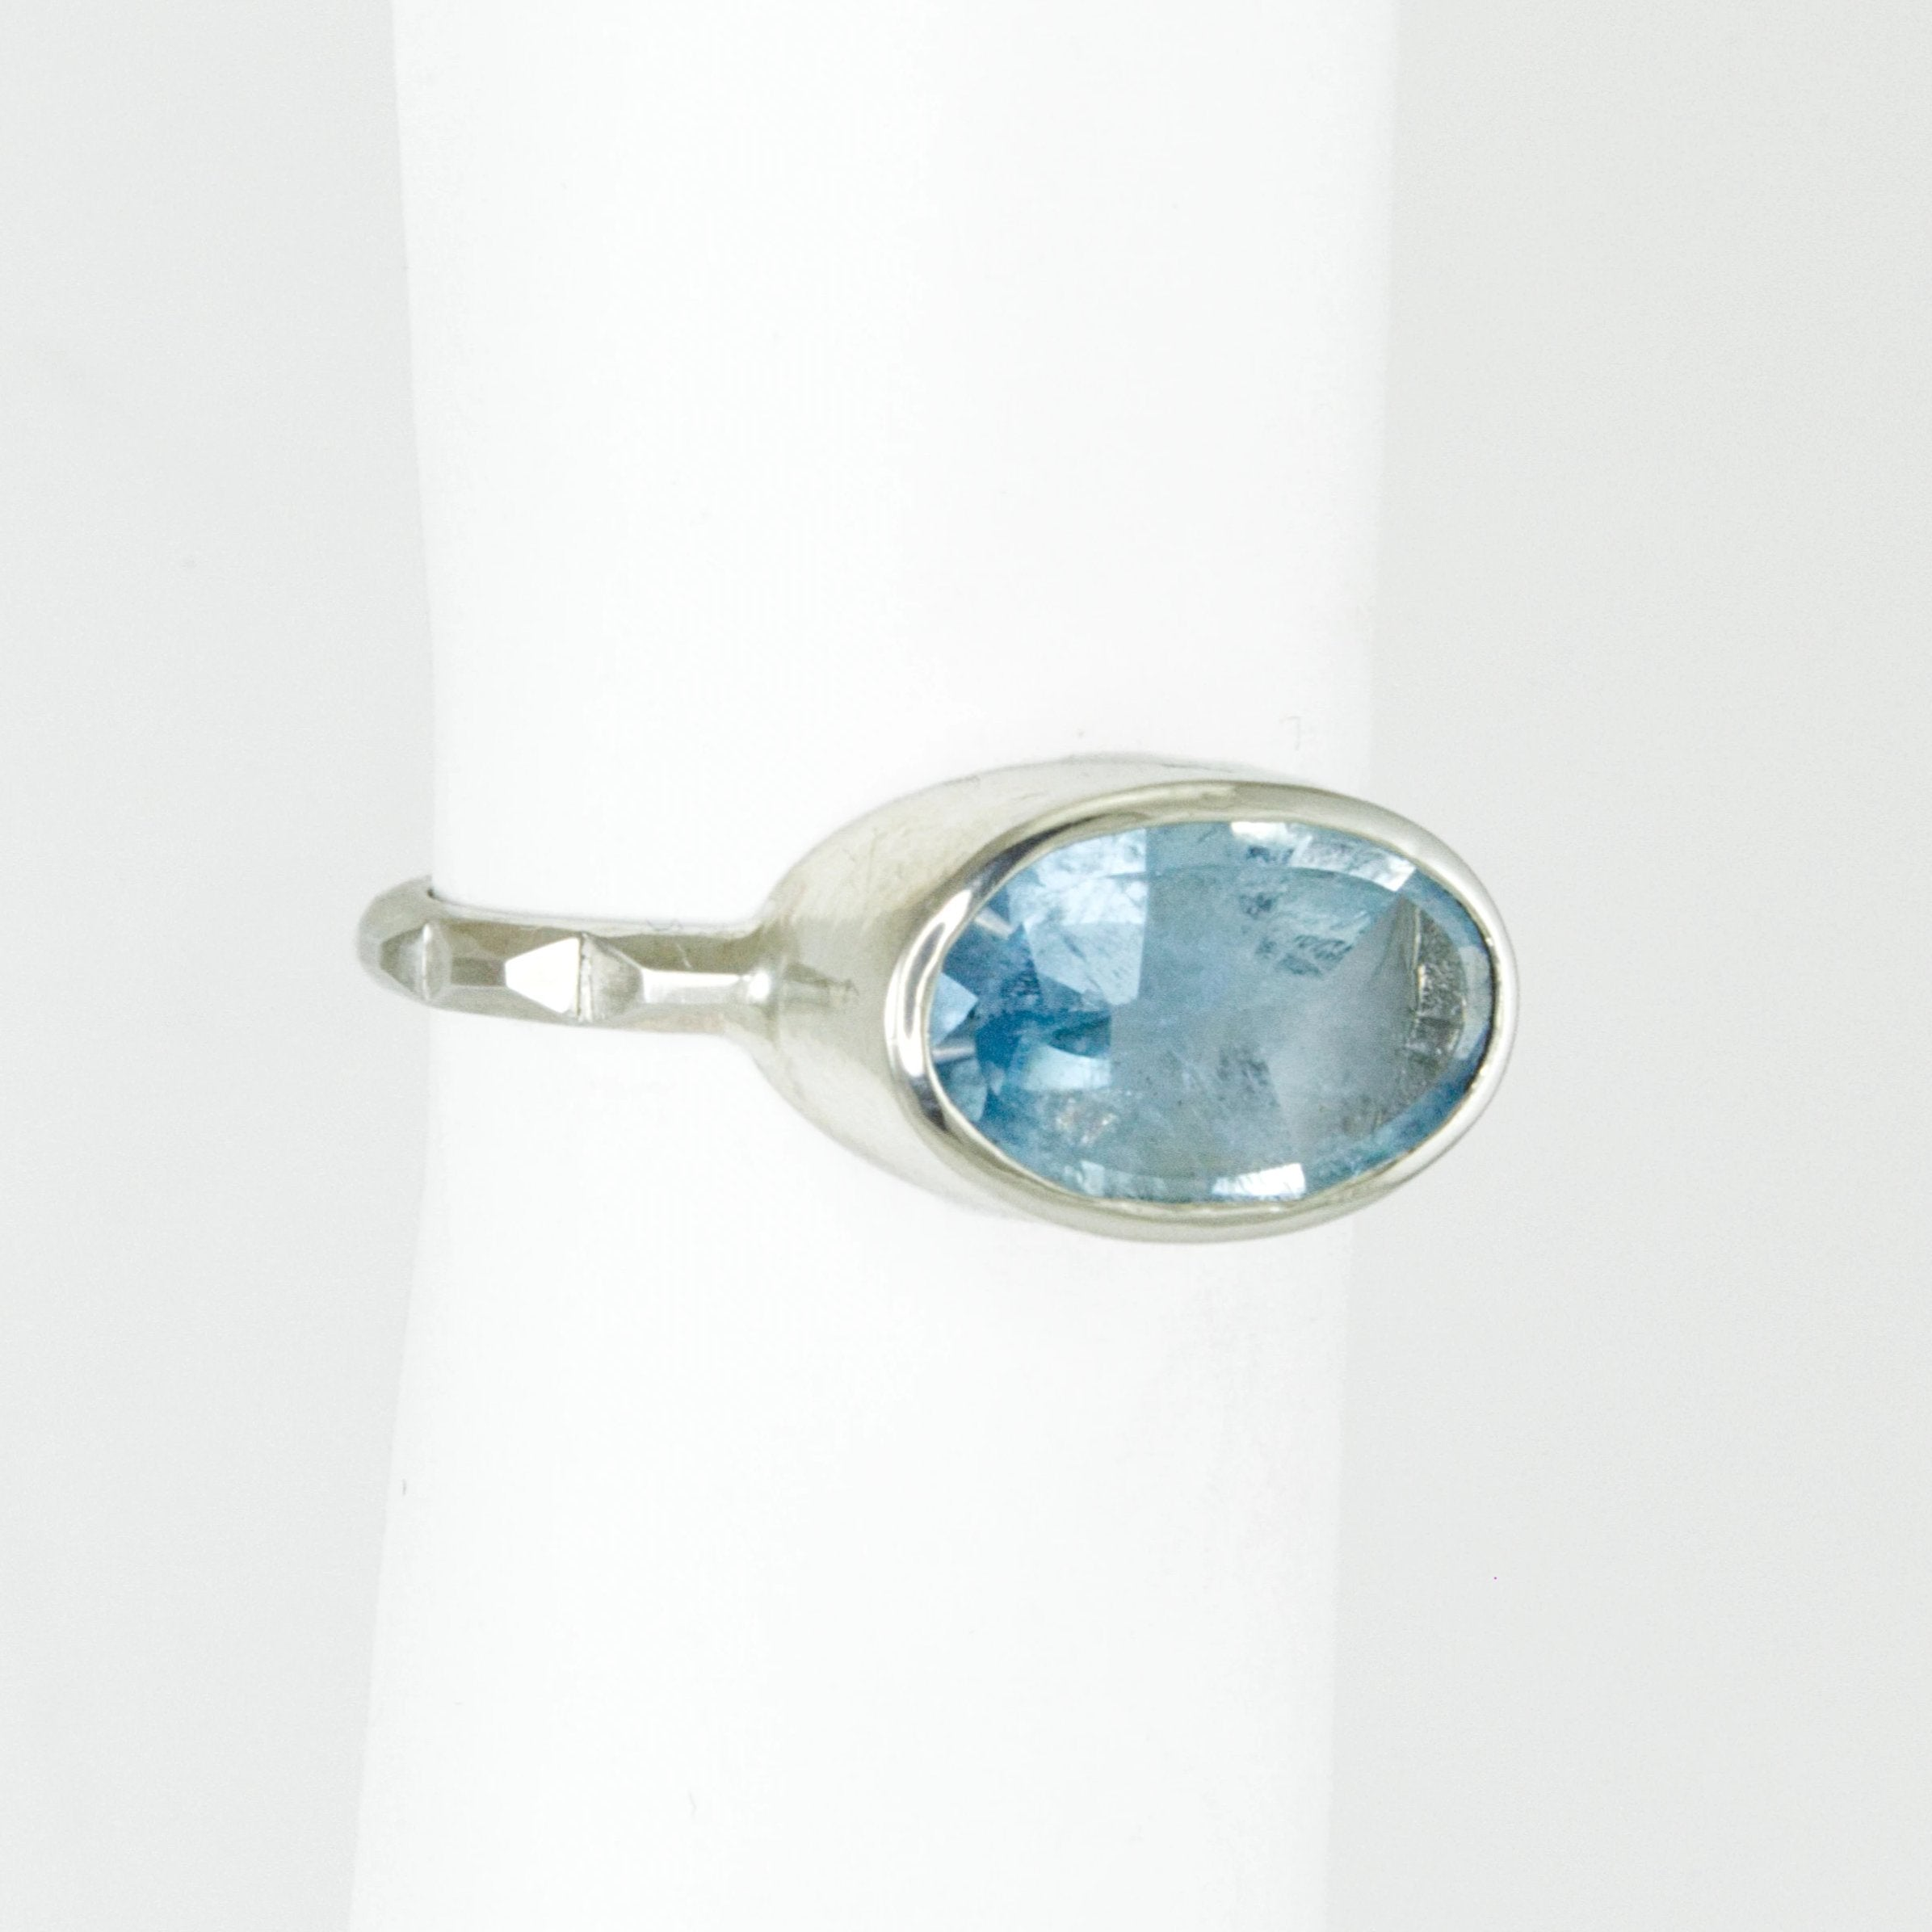 Aquamarine Oval Frusta Ring - Size 6.5